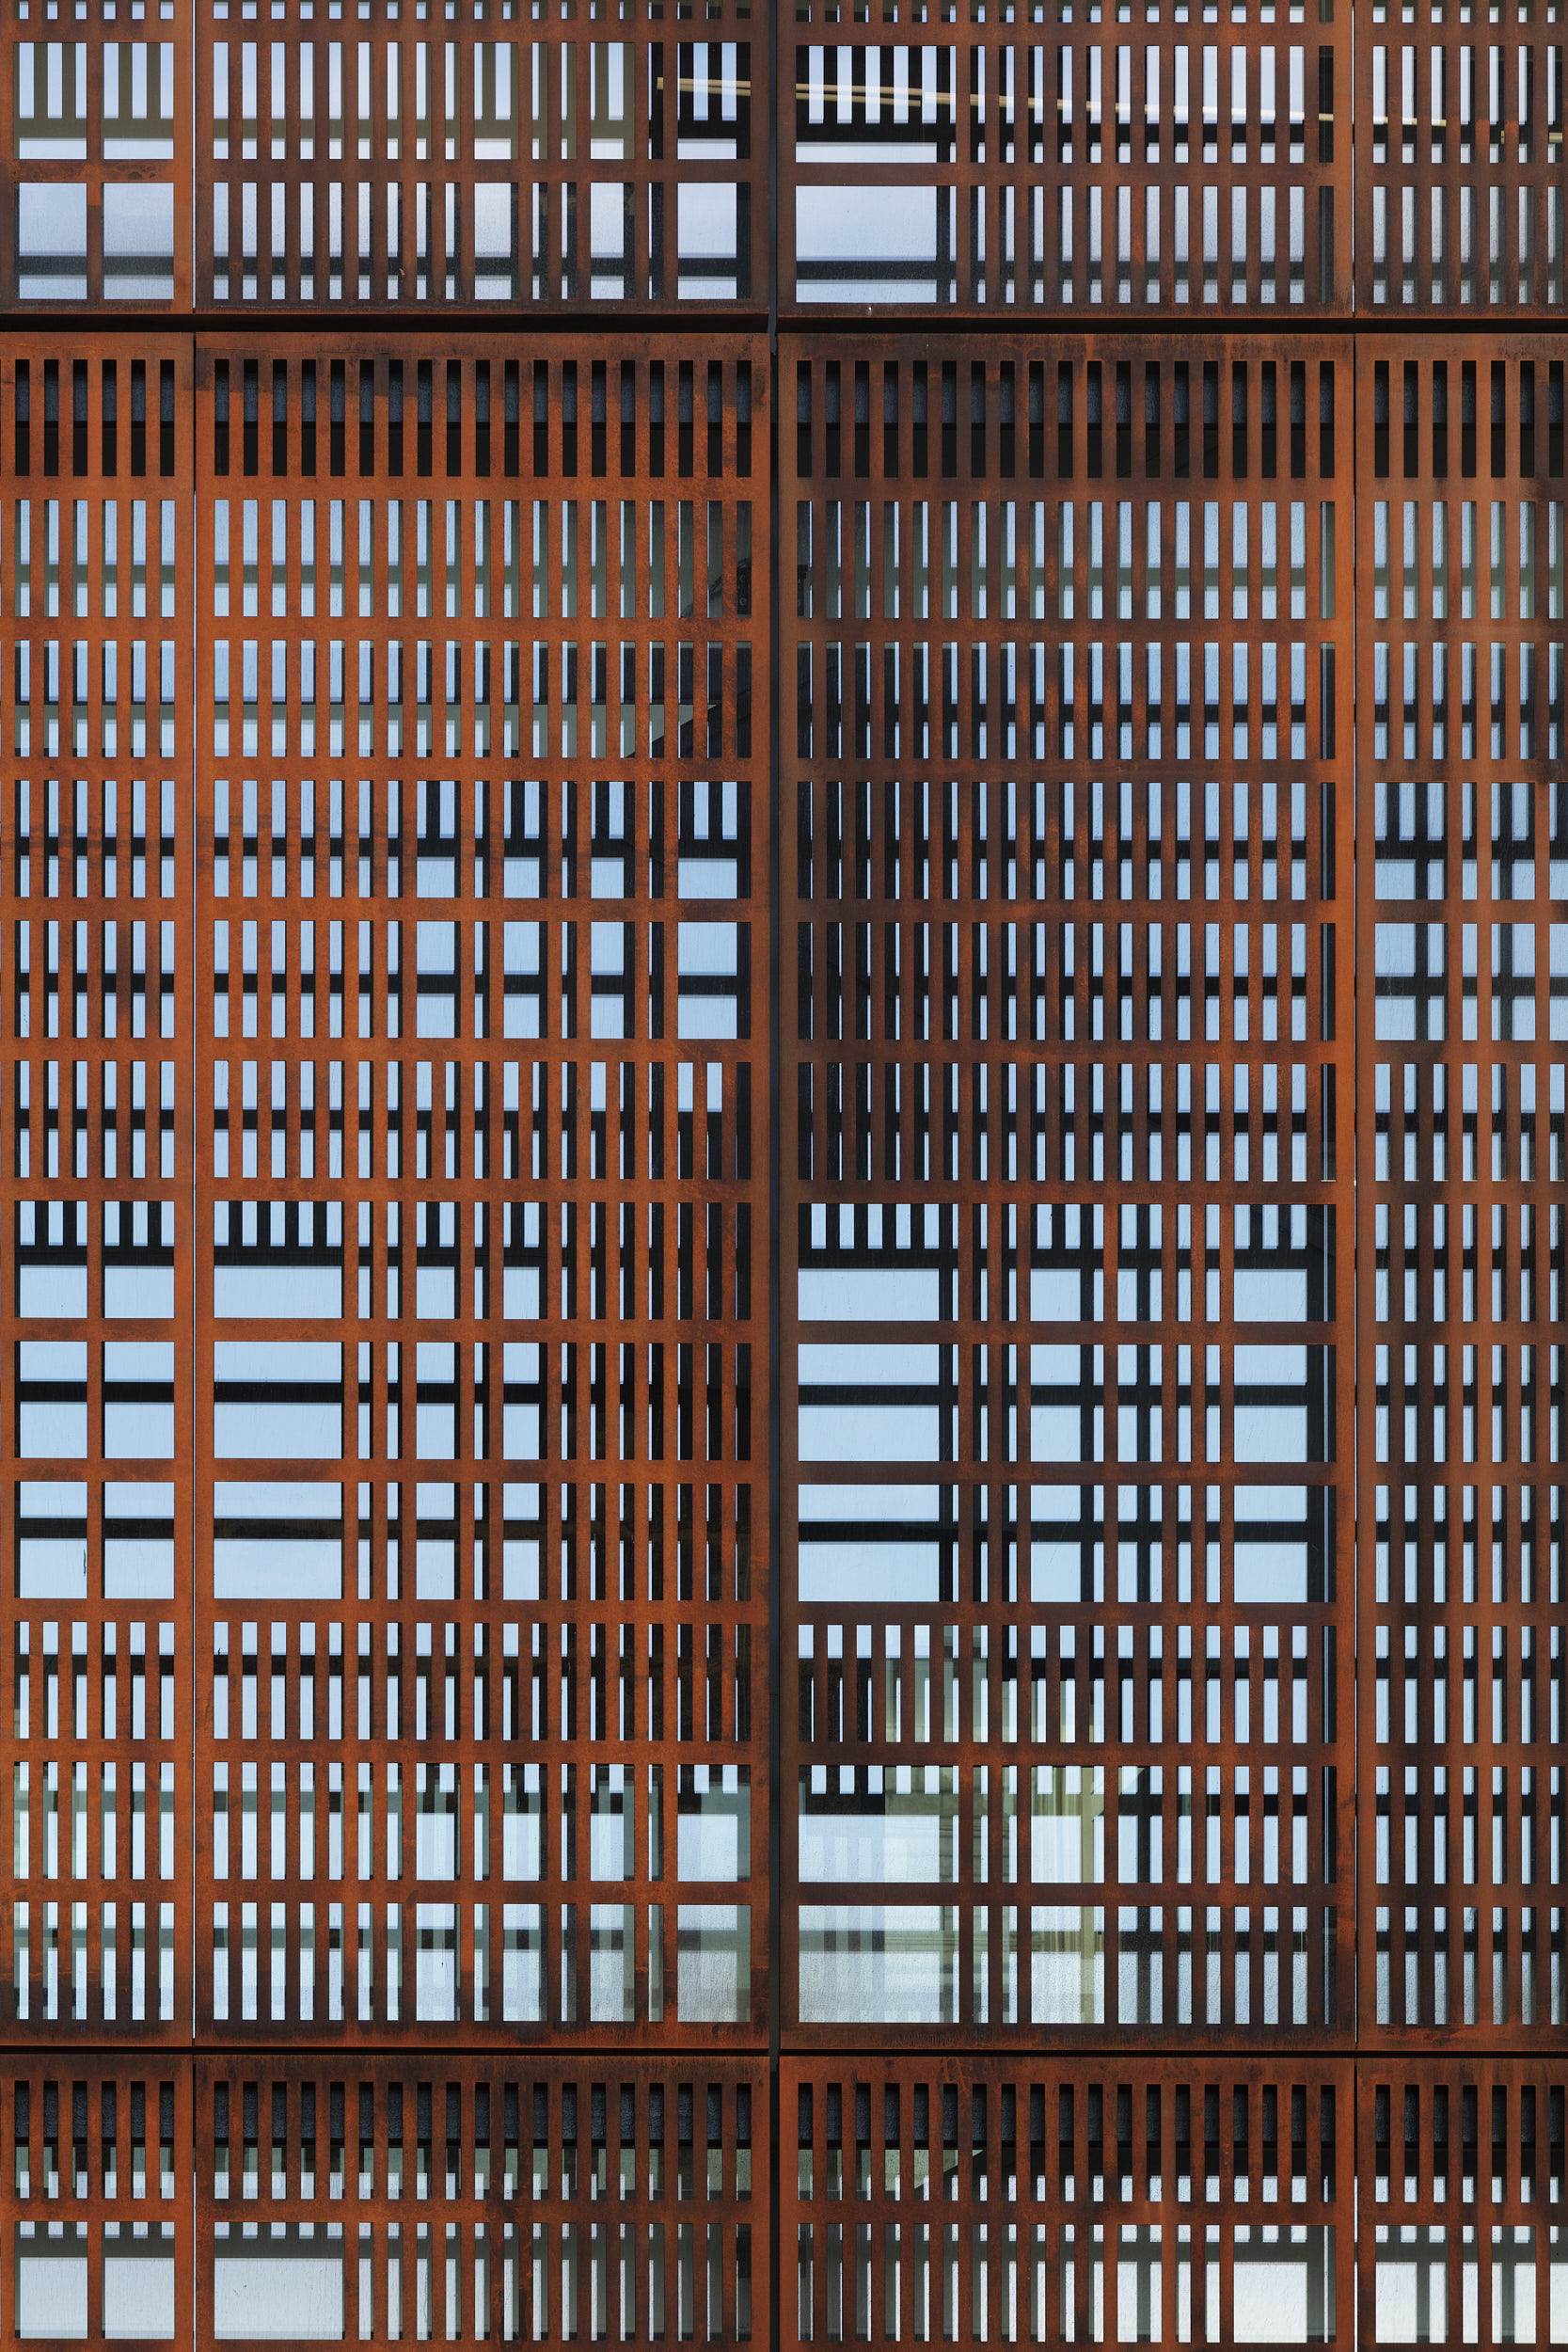 Architectural detail photograph showing perforated cor-ten steel screen.